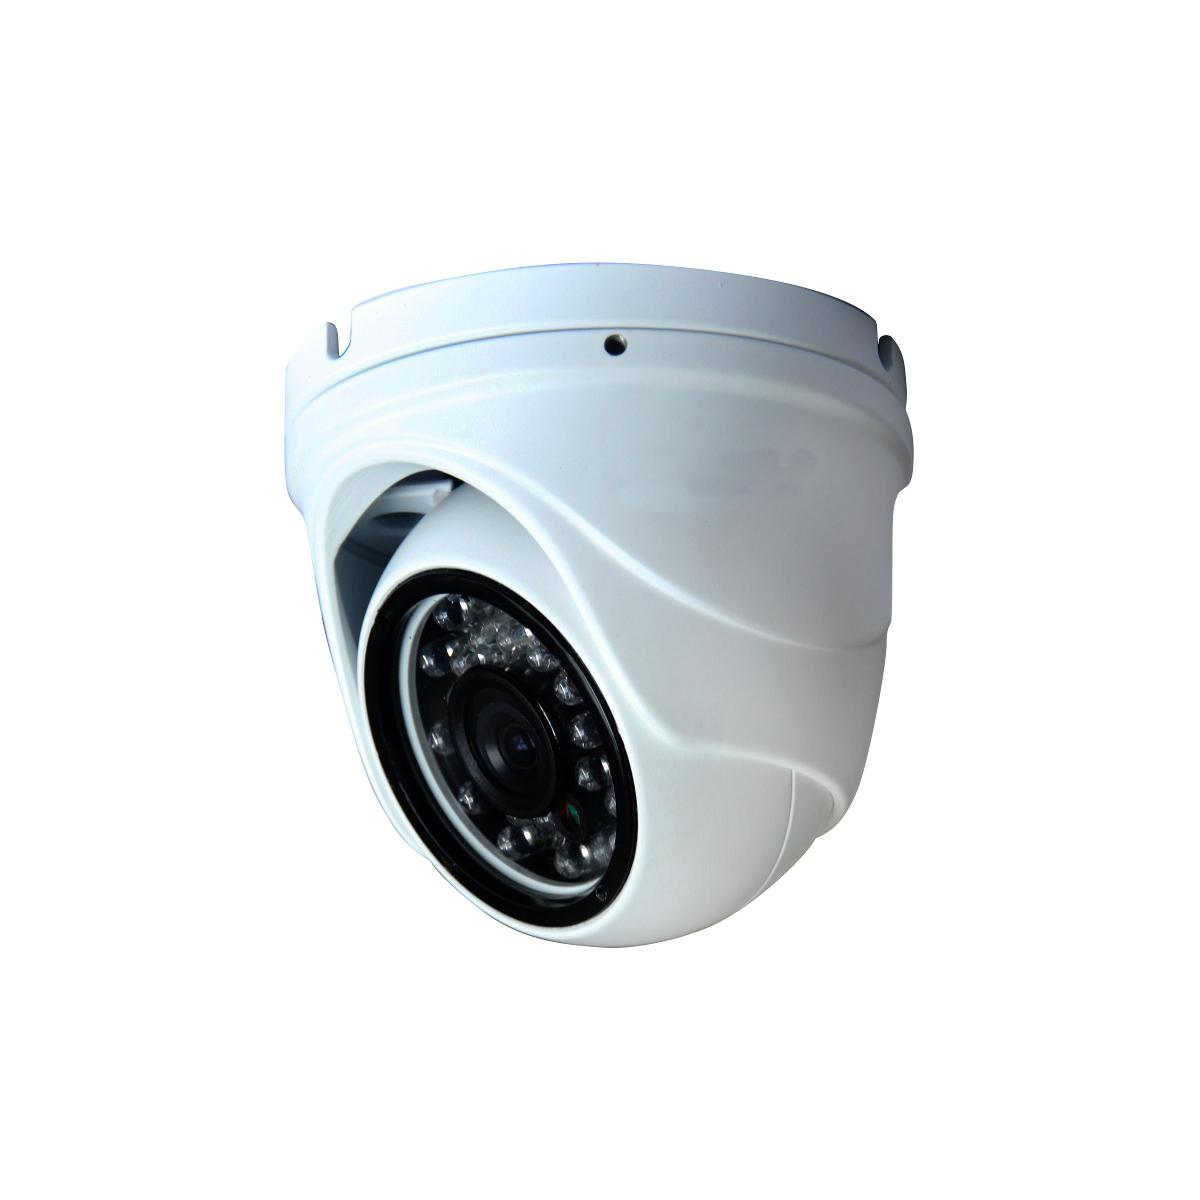 Telecamera dome 3.6 mm 1080p 3.0m pixels - TELECAMERE IP | Lorwen.it